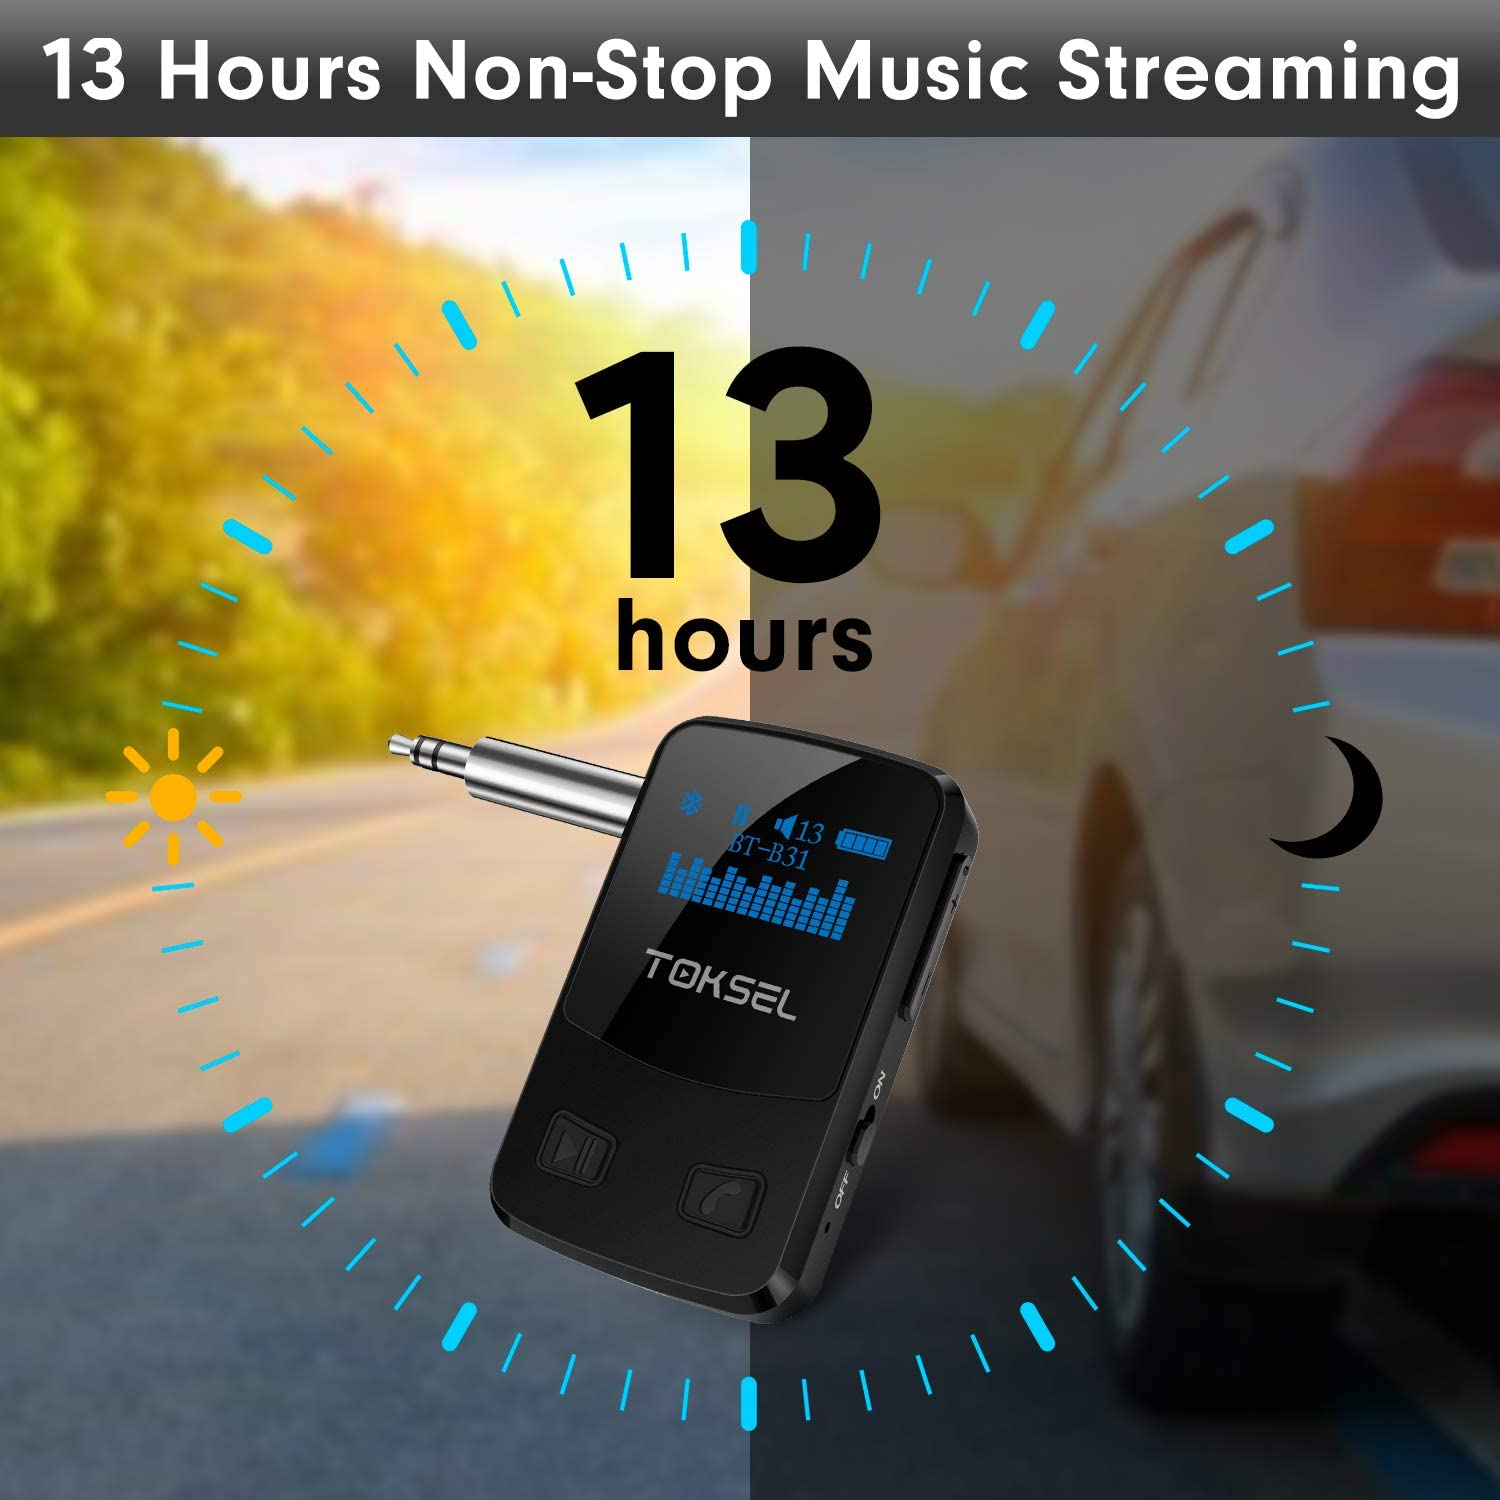 Bluetooth 5.0 Music Receiver with Display Screen TOKSEL Aux Bluetooth Adapter for Car 13-Hour Battery Life 3D Surround Sound for Home Stereo CVC8.0 Noise Cancelling Handsfree Calls